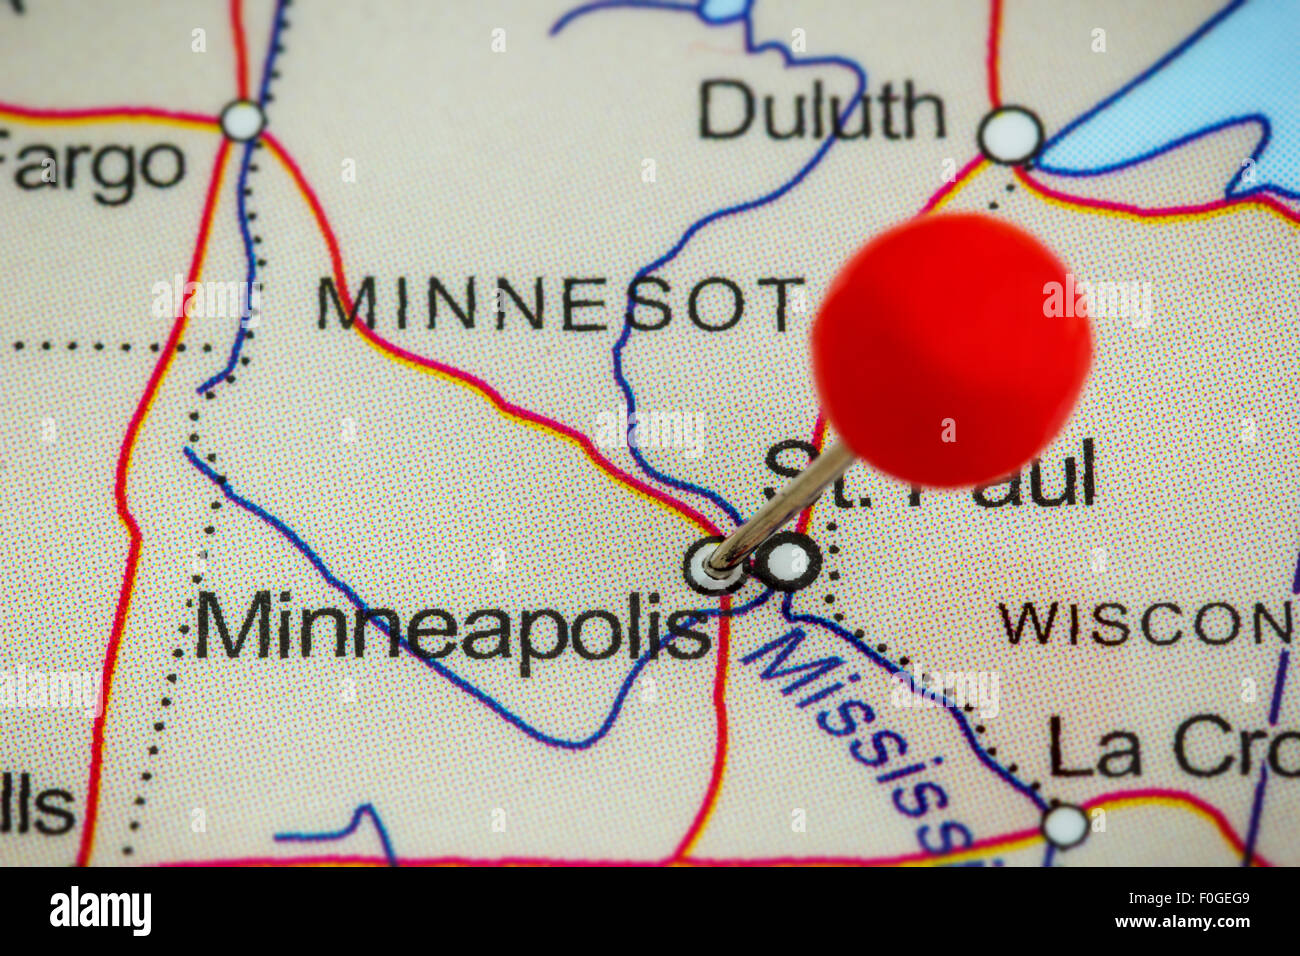 Map Of Minneapolis Stock Photos   Map Of Minneapolis Stock Images     Close up of a red pushpin on a map of Minneapolis  USA   Stock